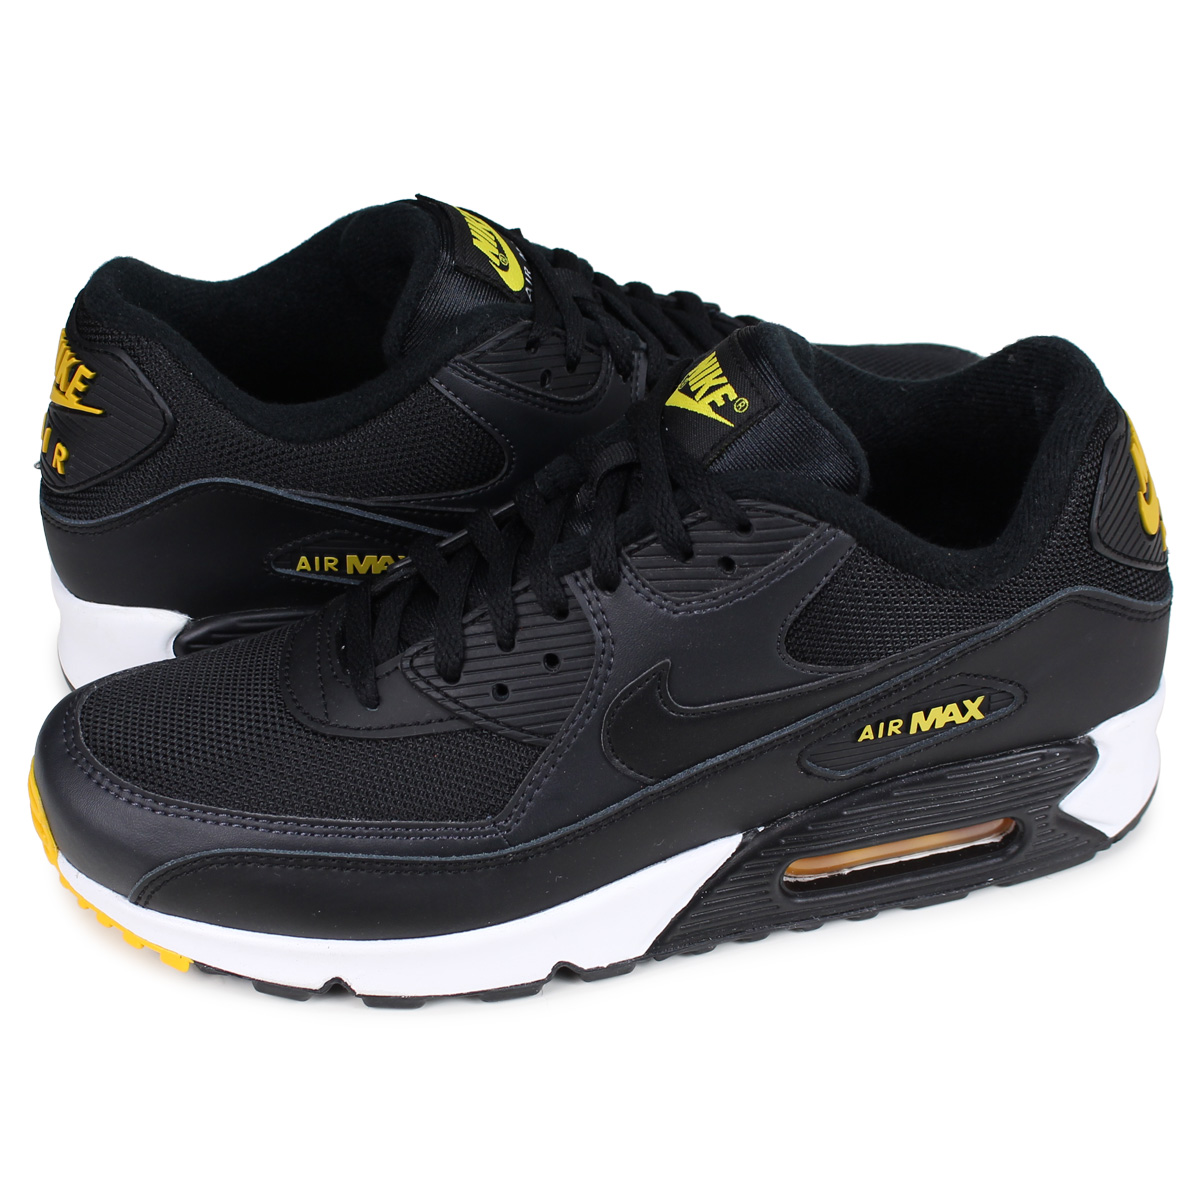 watch 44a25 58873 Nike NIKE Air Max 90 essential sneakers men AIR MAX 90 ESSENTIAL black  black AJ1285-022 [196]